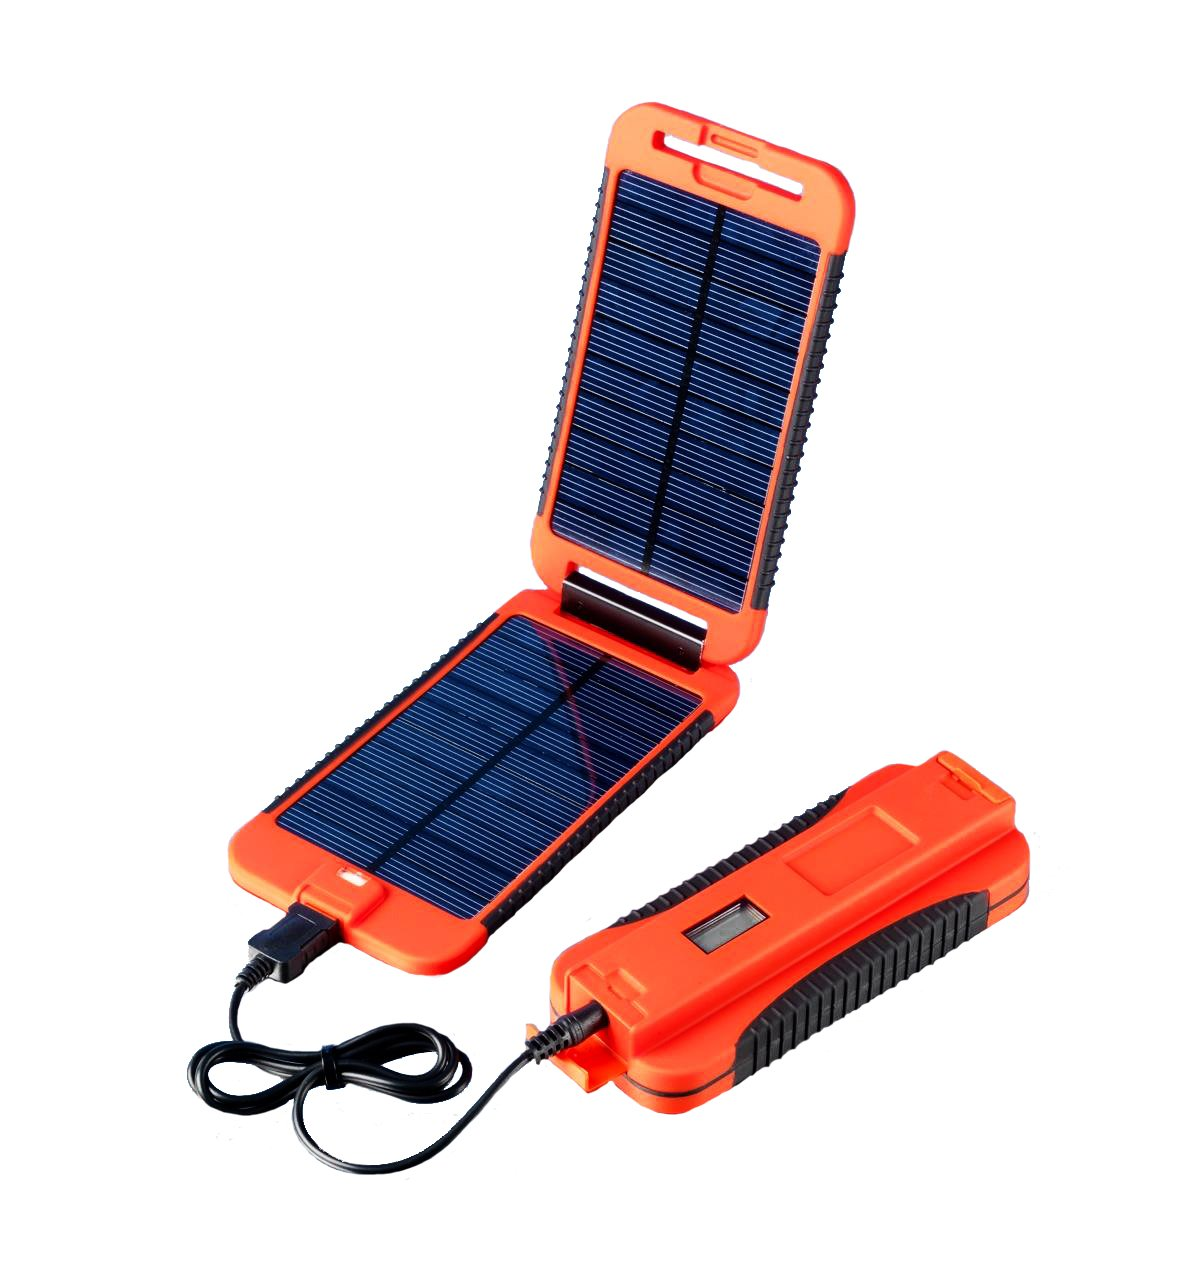 Exo-Science Powermonkey Extreme 5V and 12V Solar Portable Charger, Red by Exo-Science (Image #1)